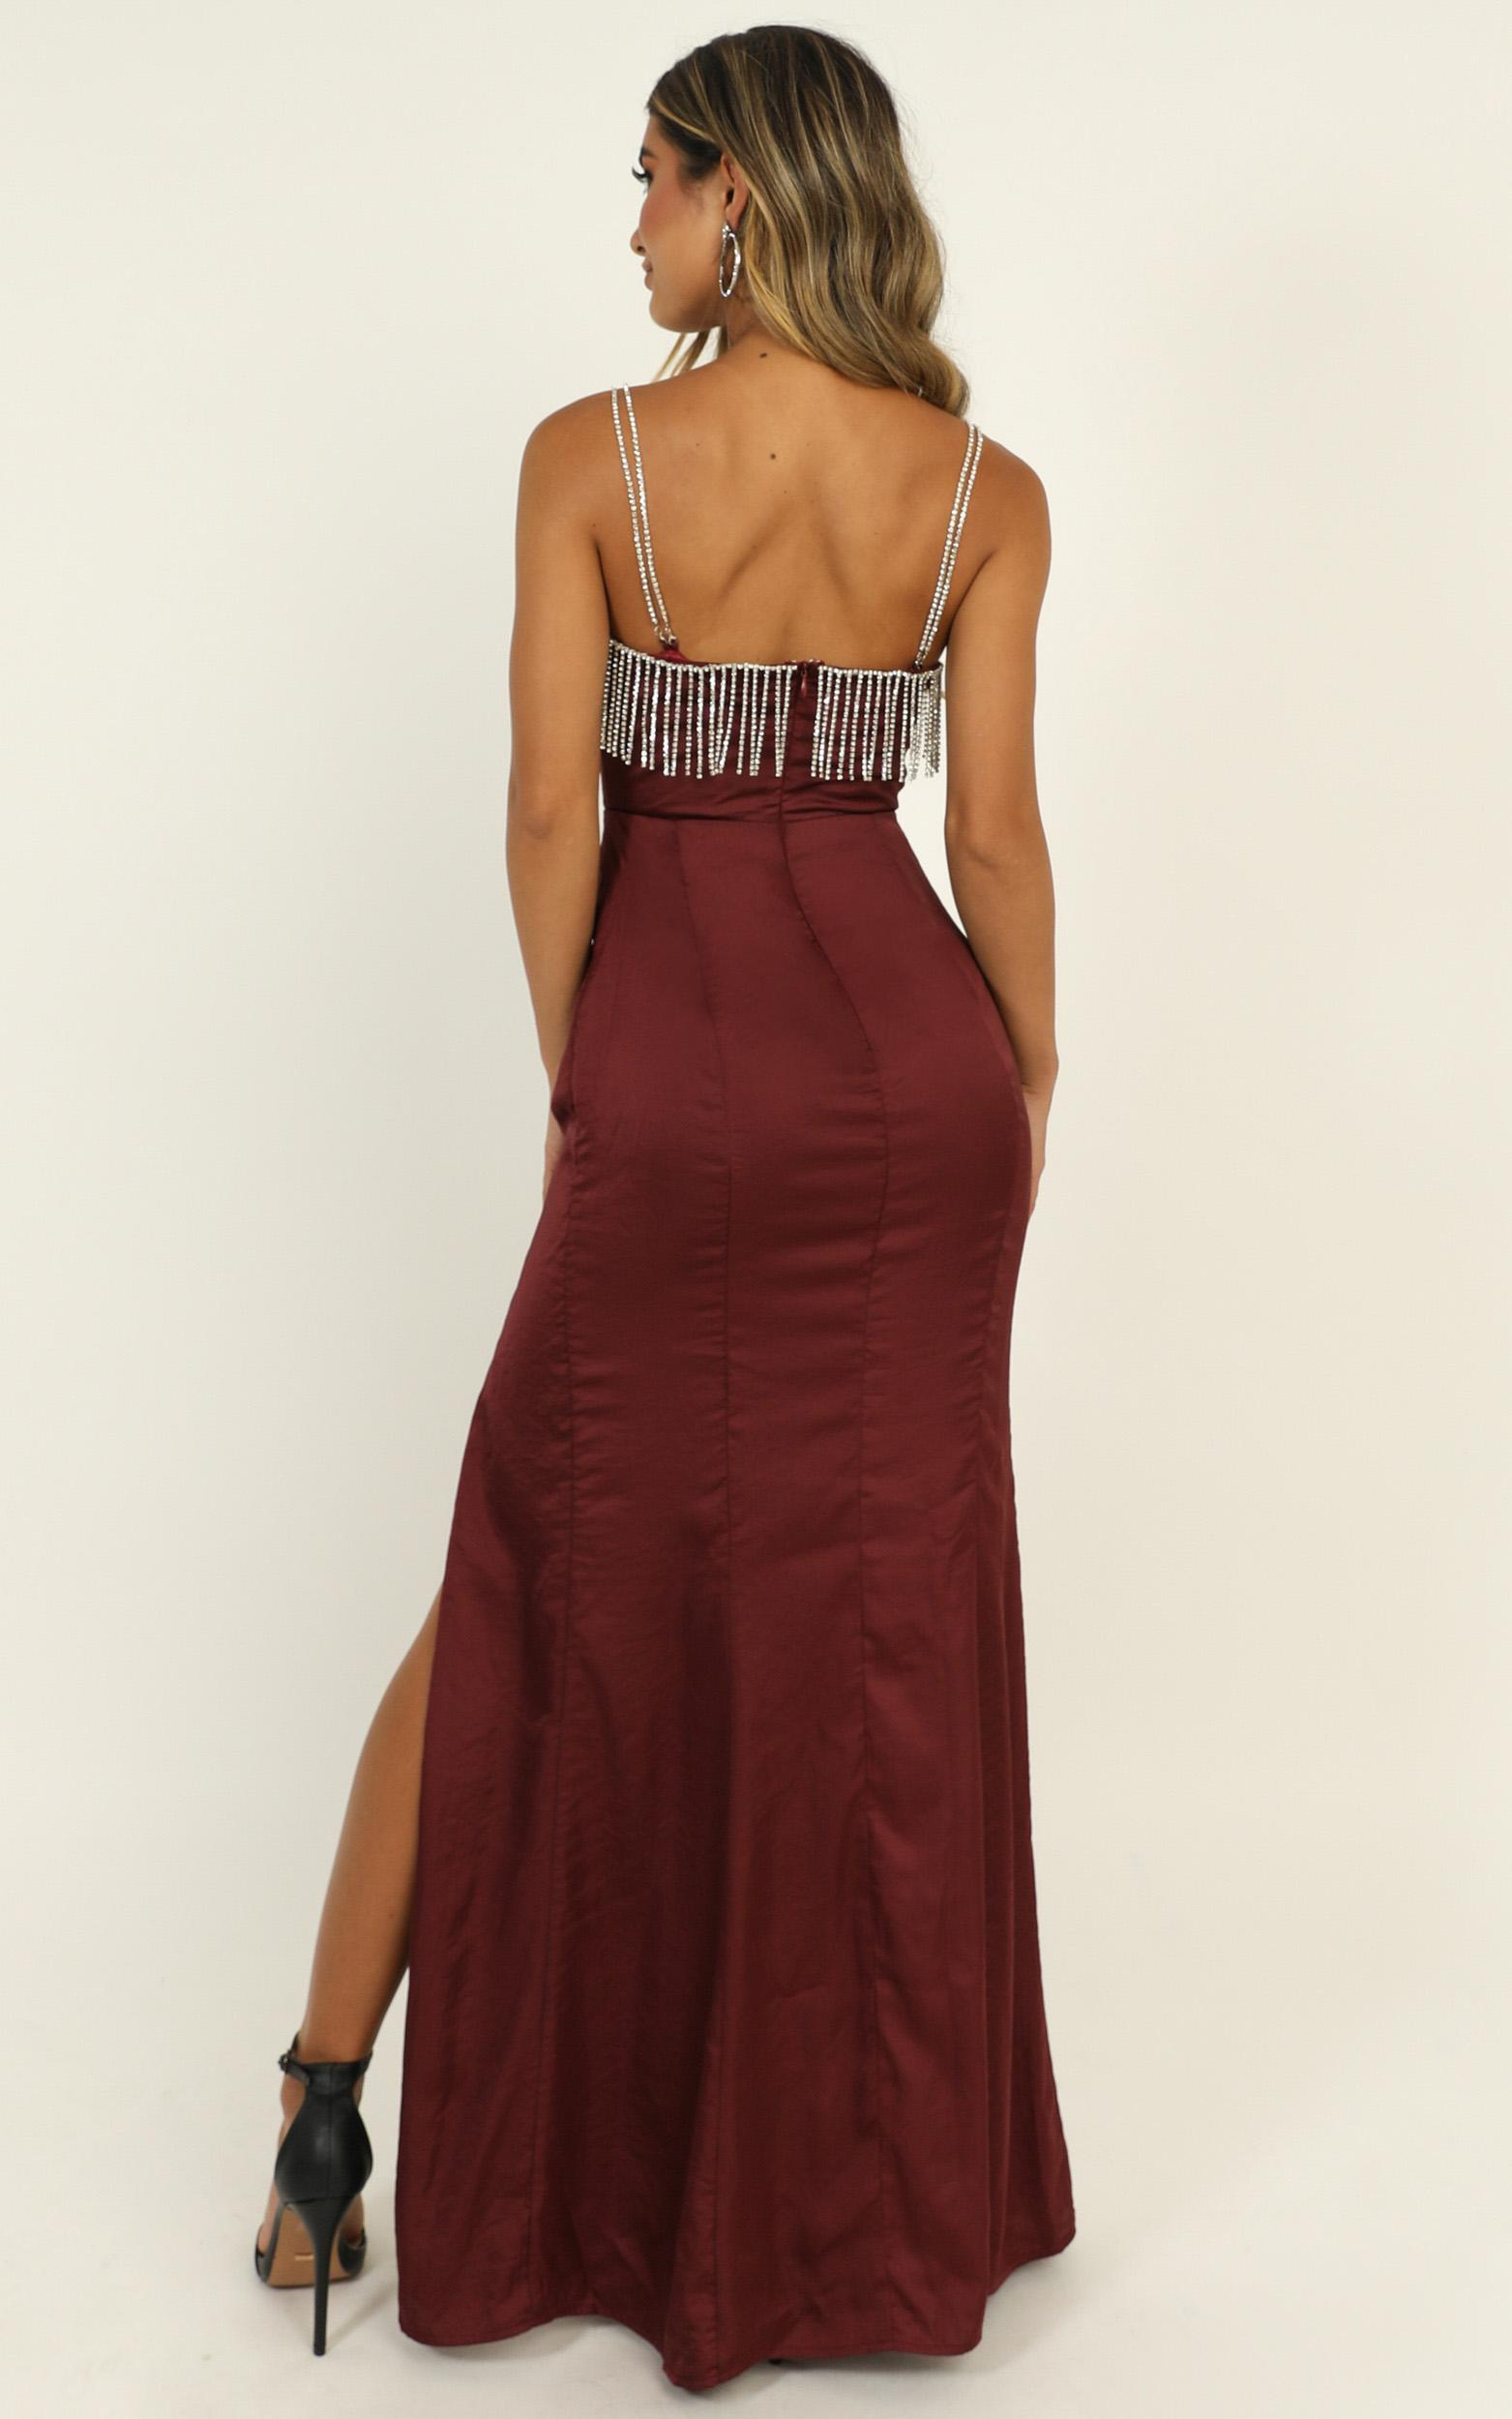 Absolutely Flawless Dress in wine satin - 14 (XL), Wine, hi-res image number null